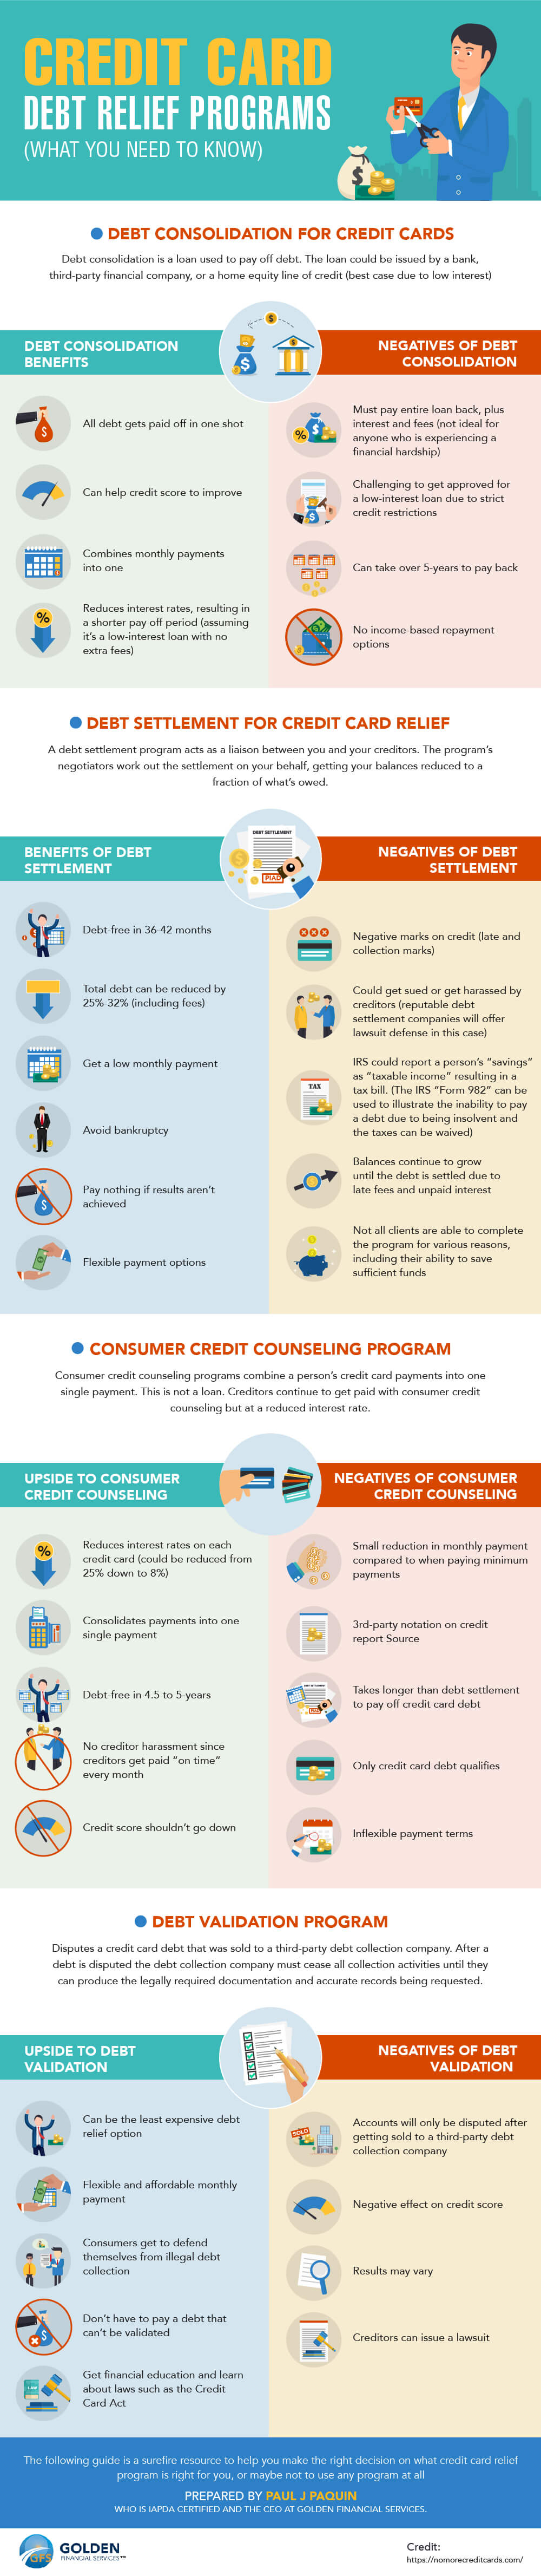 Credit-Card-Debt-Relief-Programs-Summary-infogrpahic-plaza